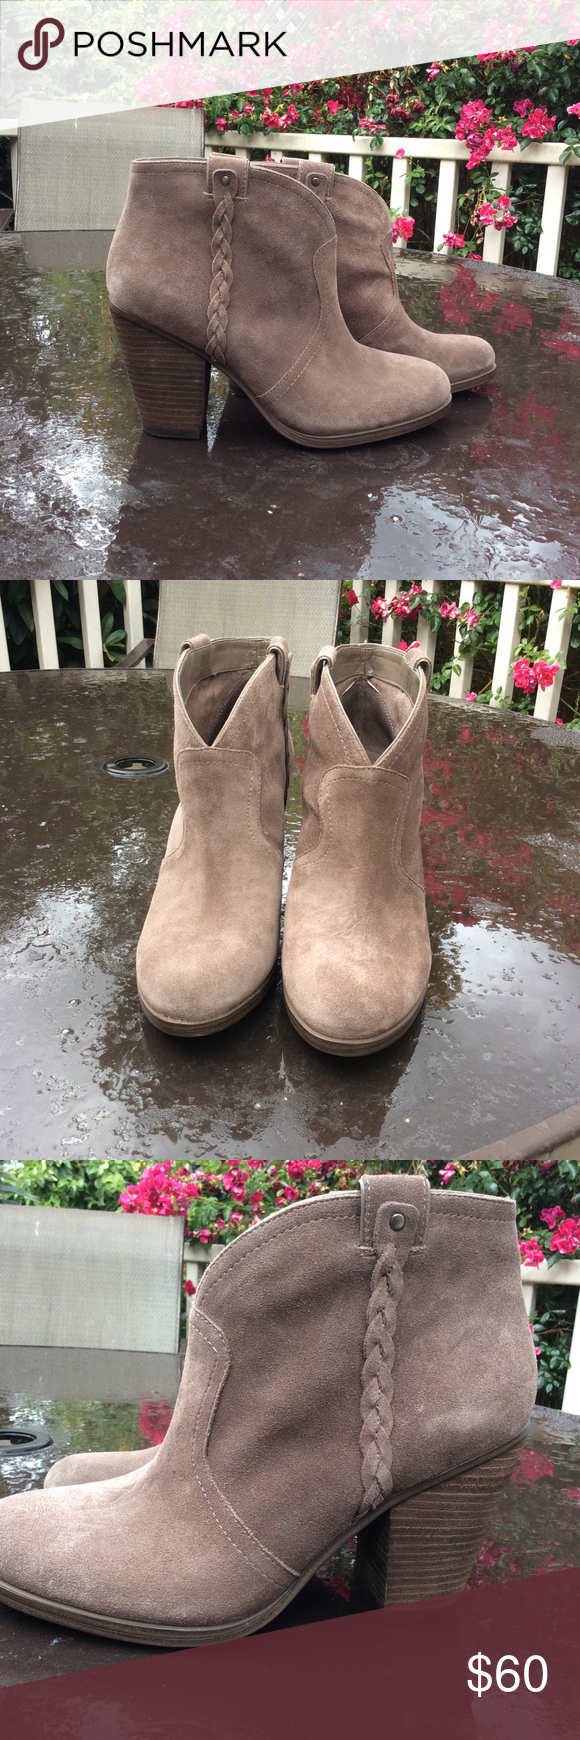 Vince Camuto Suede Bootie Beautiful tan suede Vince Camtuo Bootie. Brand new, never worn. Braid detail on ankle. Vince Camuto Shoes Ankle Boots & Booties